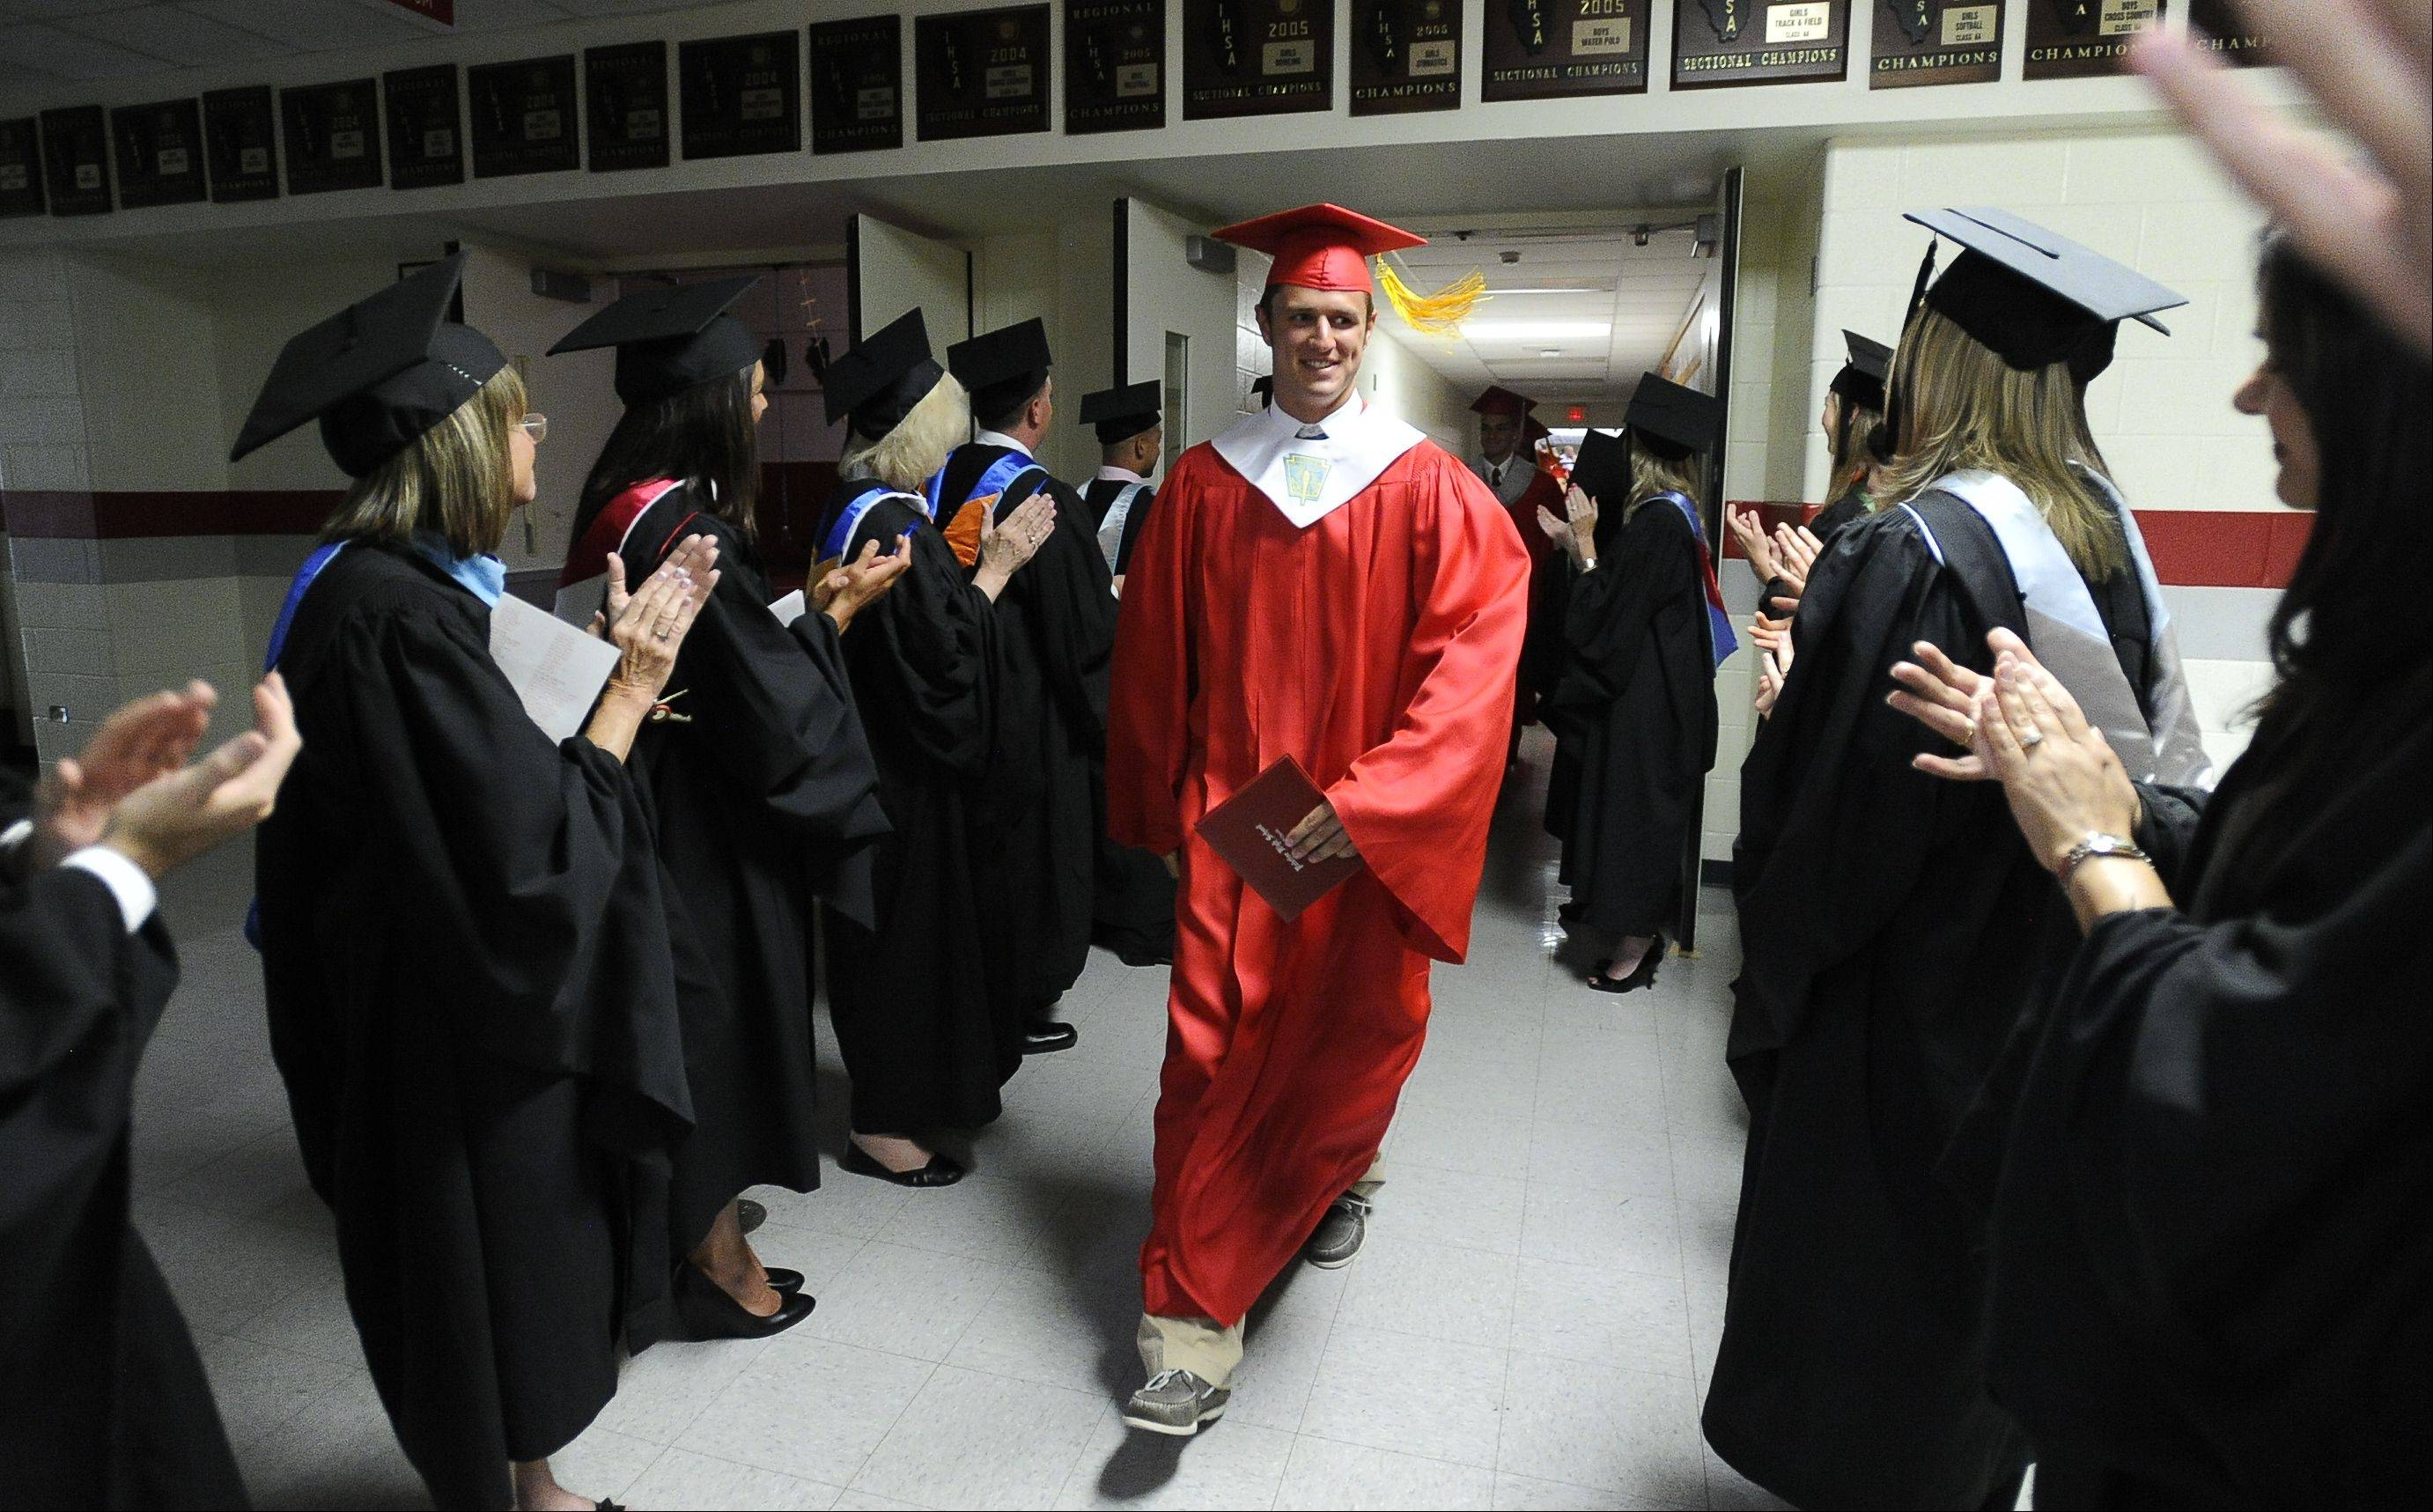 Images from the Palatine High School graduation on Sunday, June 3rd in Palatine.